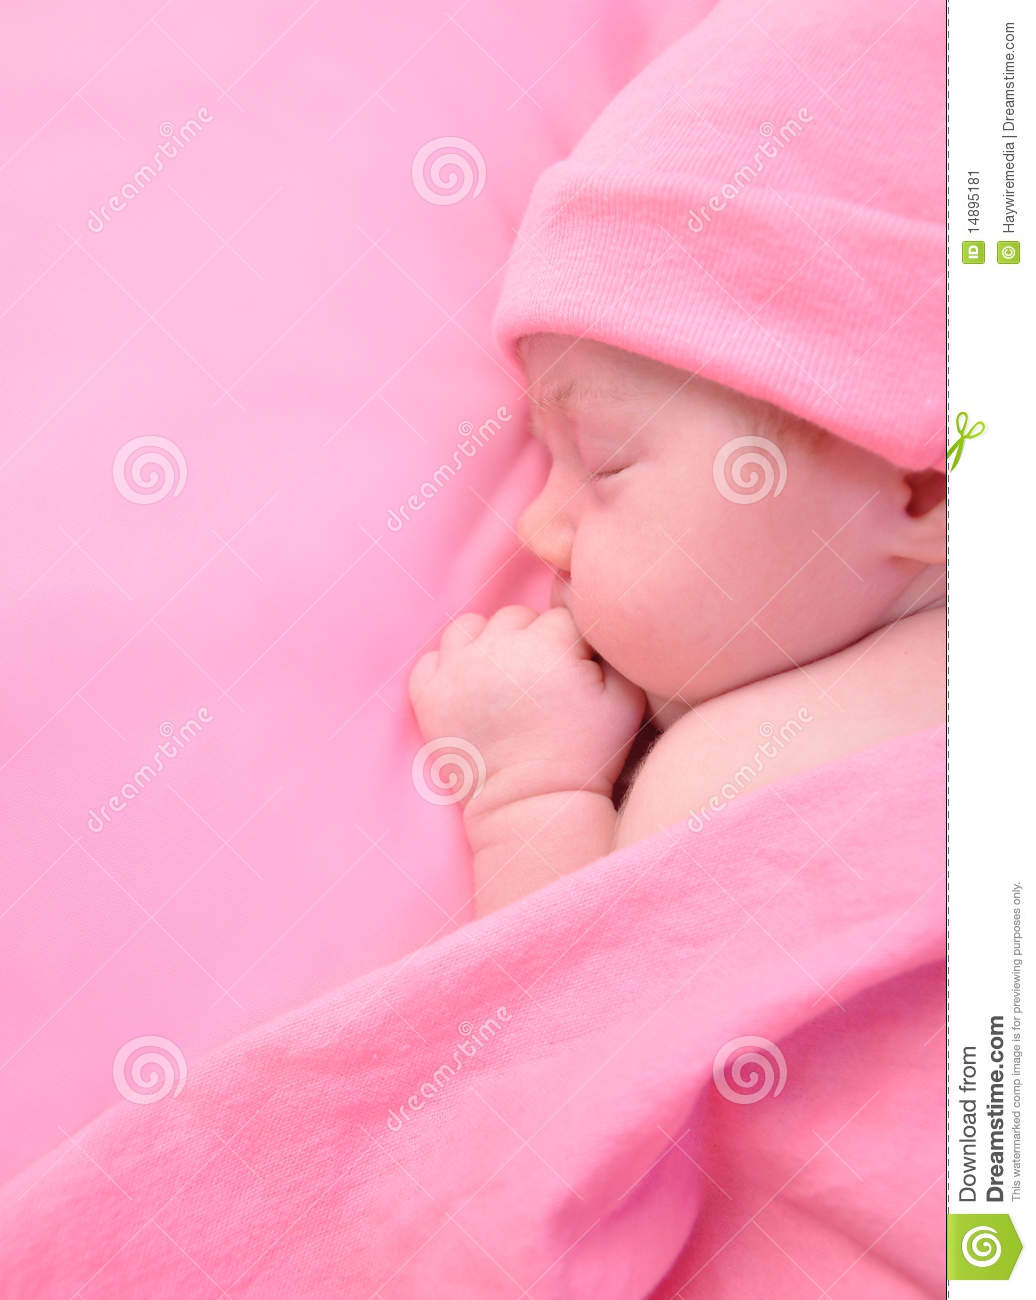 newborn baby girl sleeping with blanket stock image Baby Bottle Clip Art baby wrapped in blanket clipart